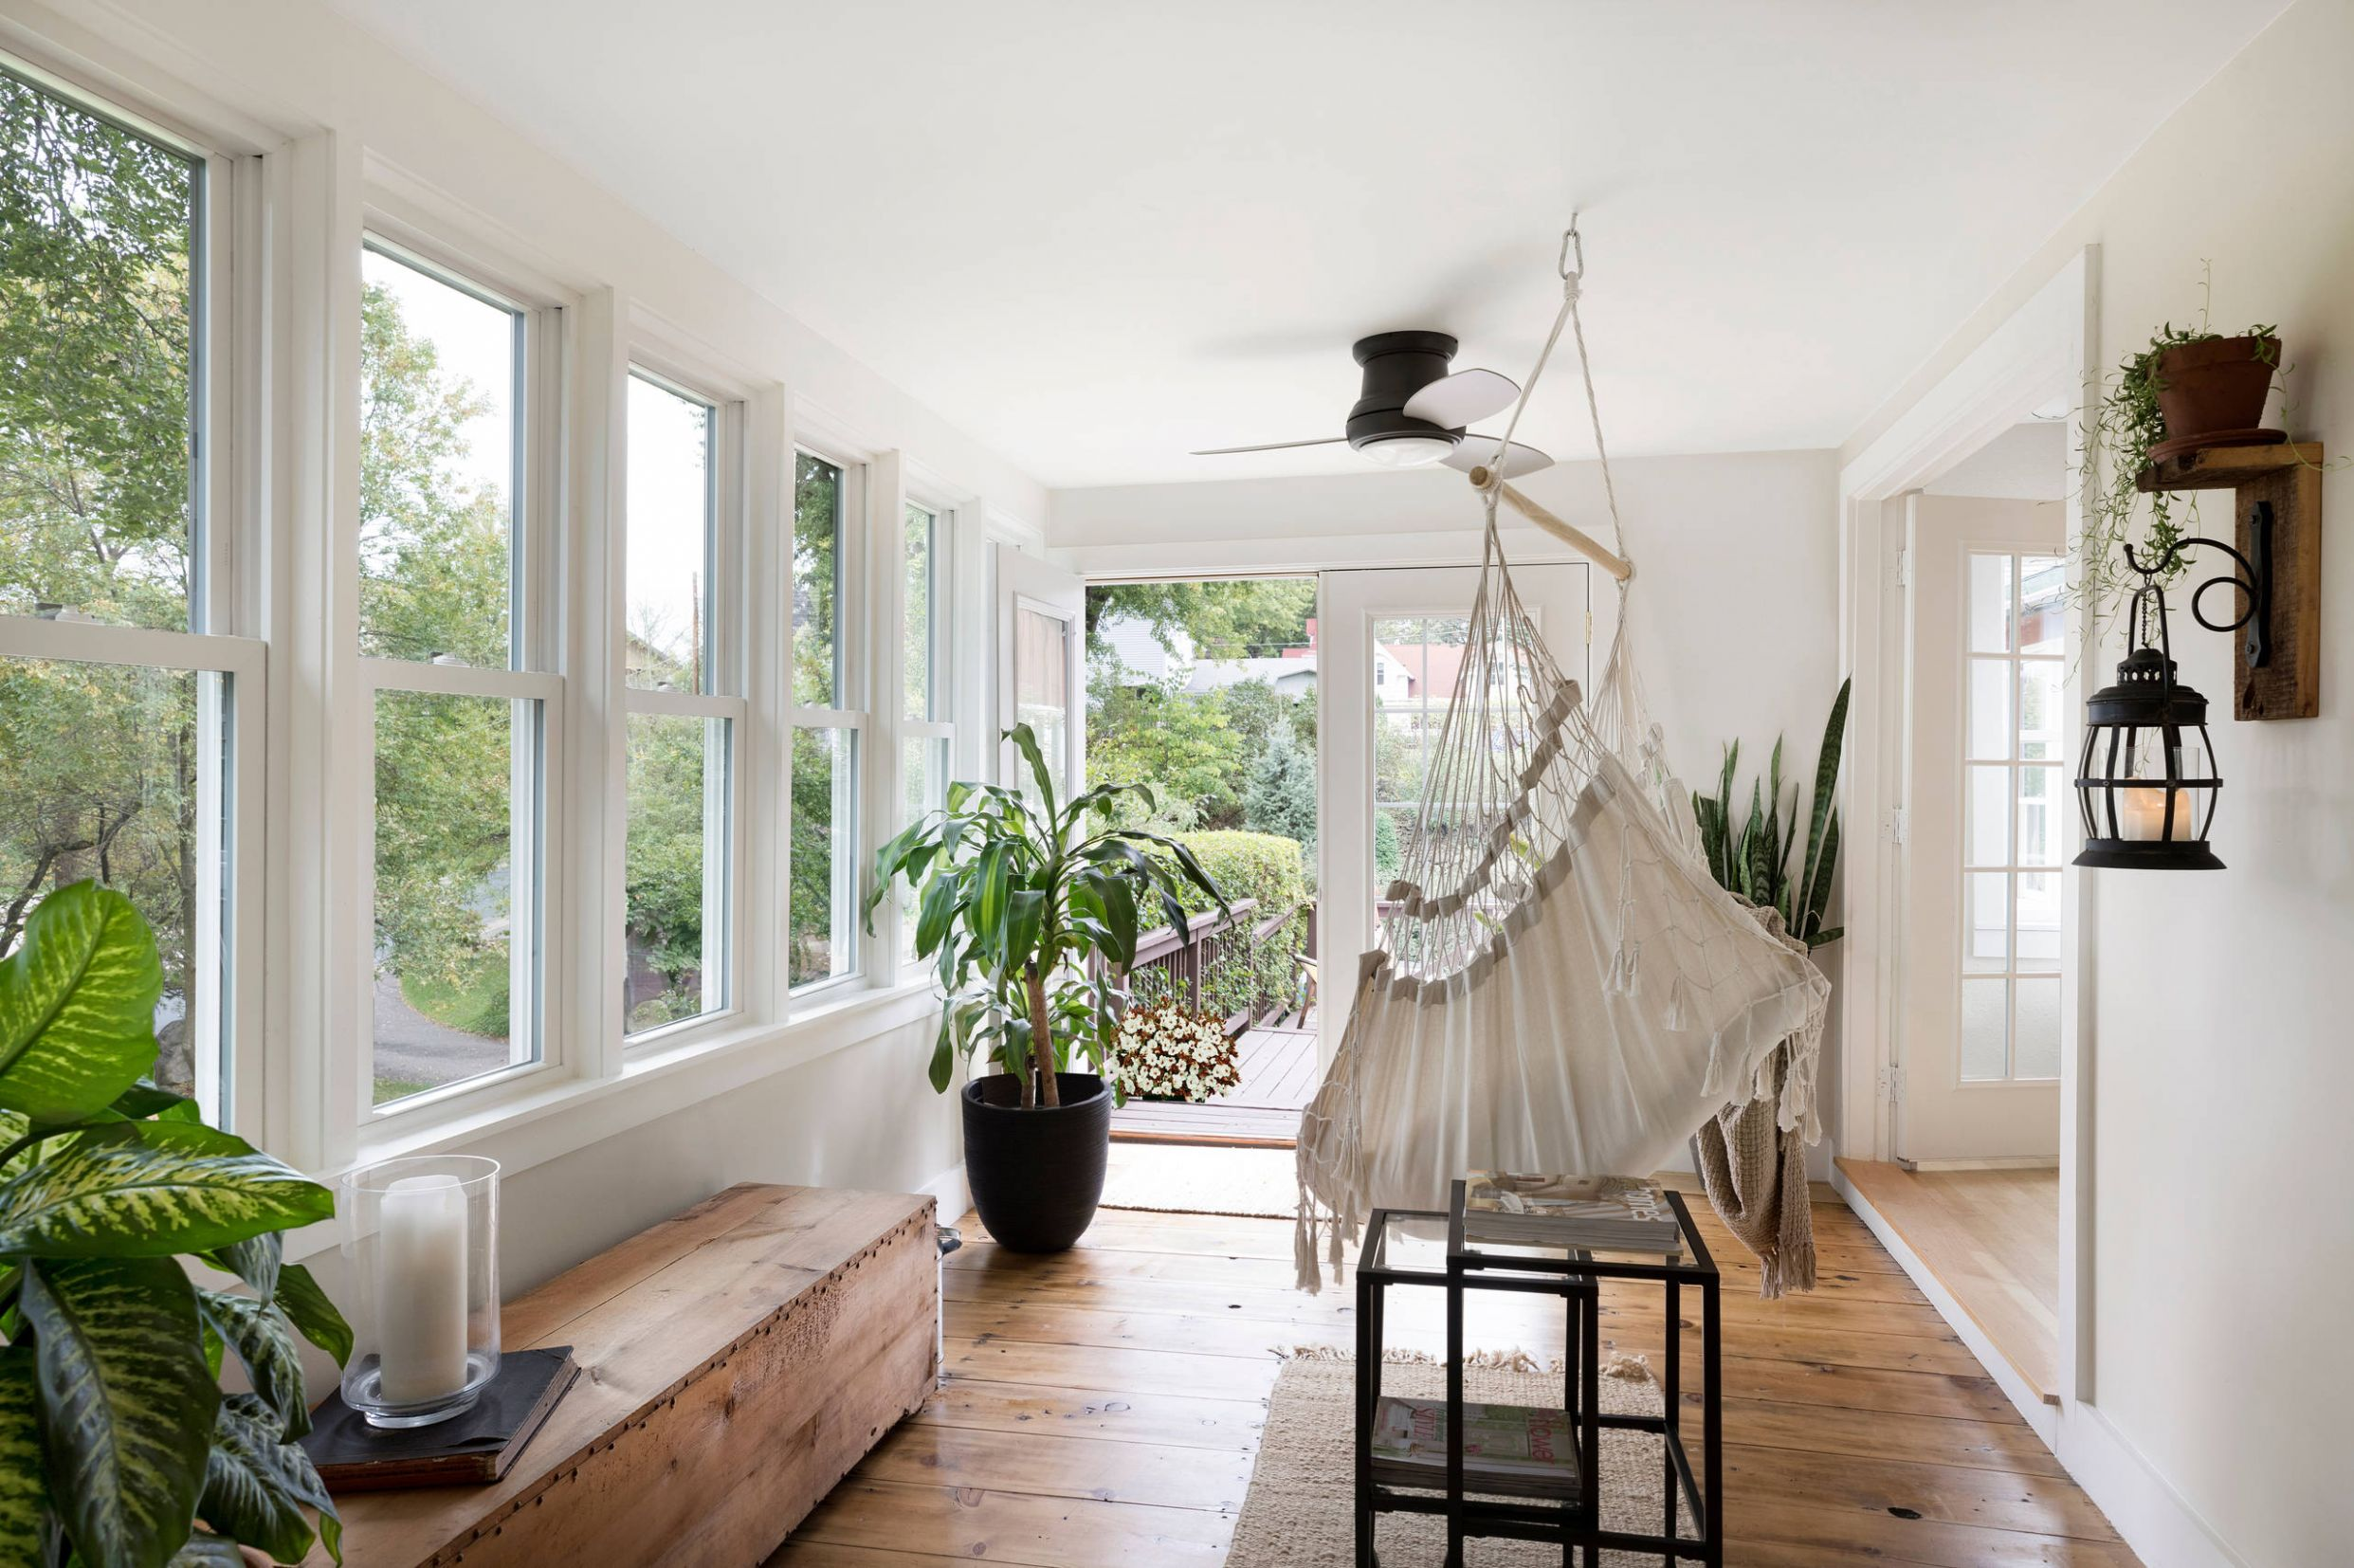 Zen Sunroom Ideas & Photos | Houzz - zen sunroom ideas